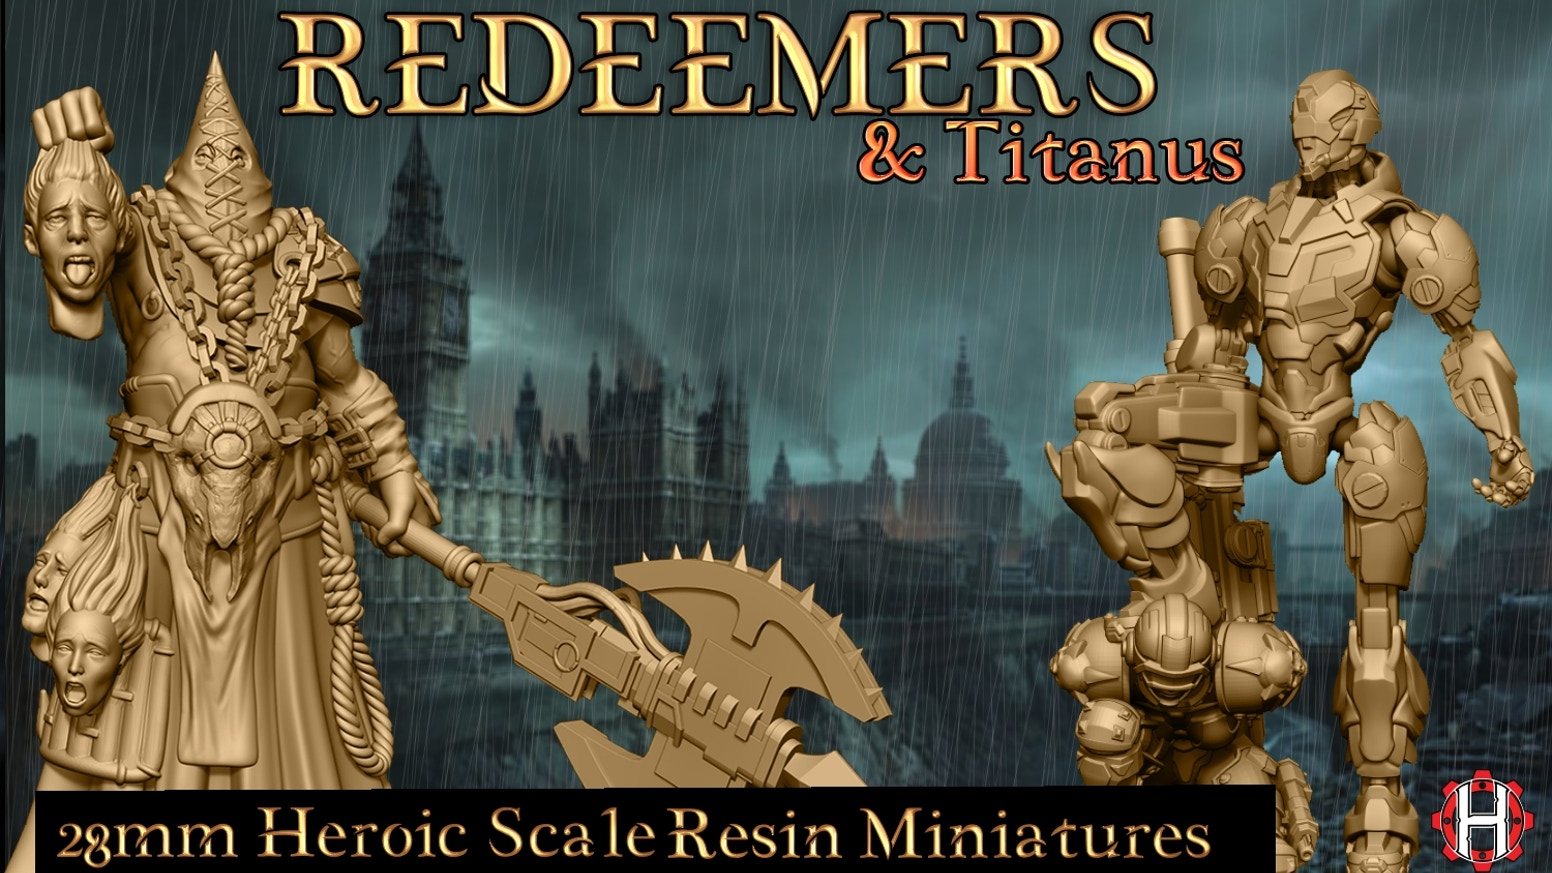 The Redeemers a set of Post Apocalyptic miniatures in 28mm Heroic Scale for table top games and 3D printing.